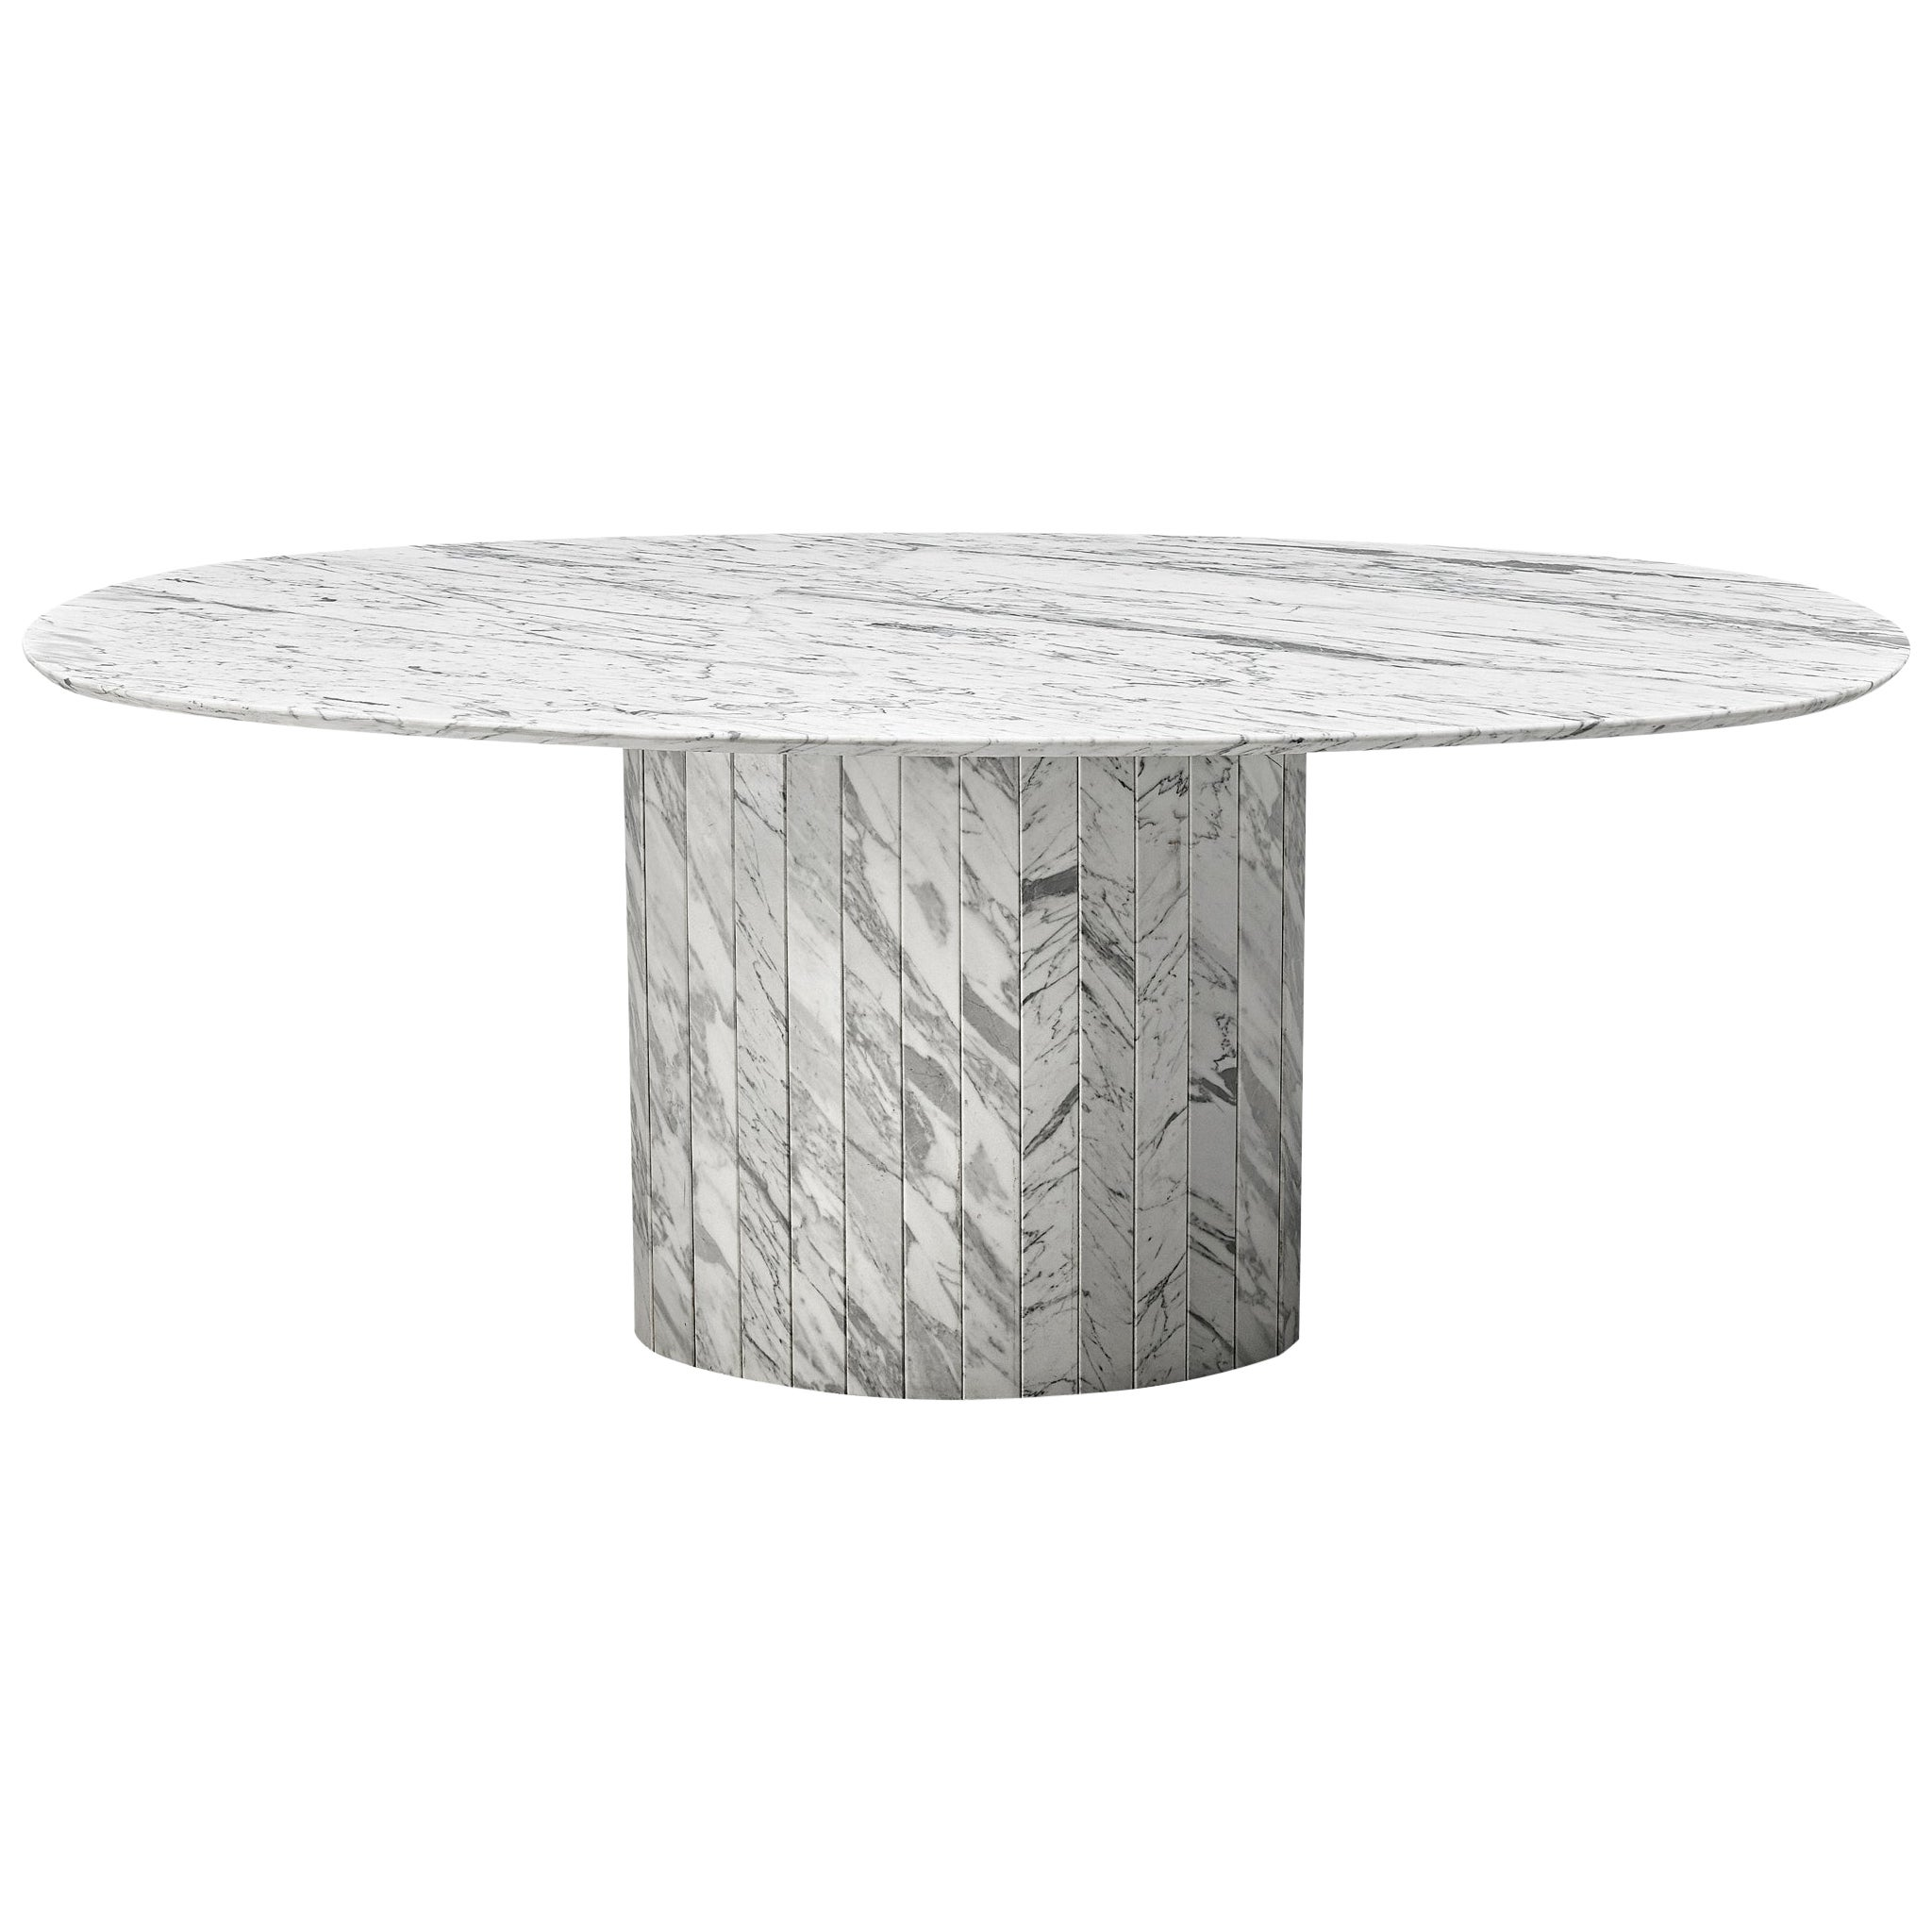 Sculptural Pedestal Table with Oval Top in Marble